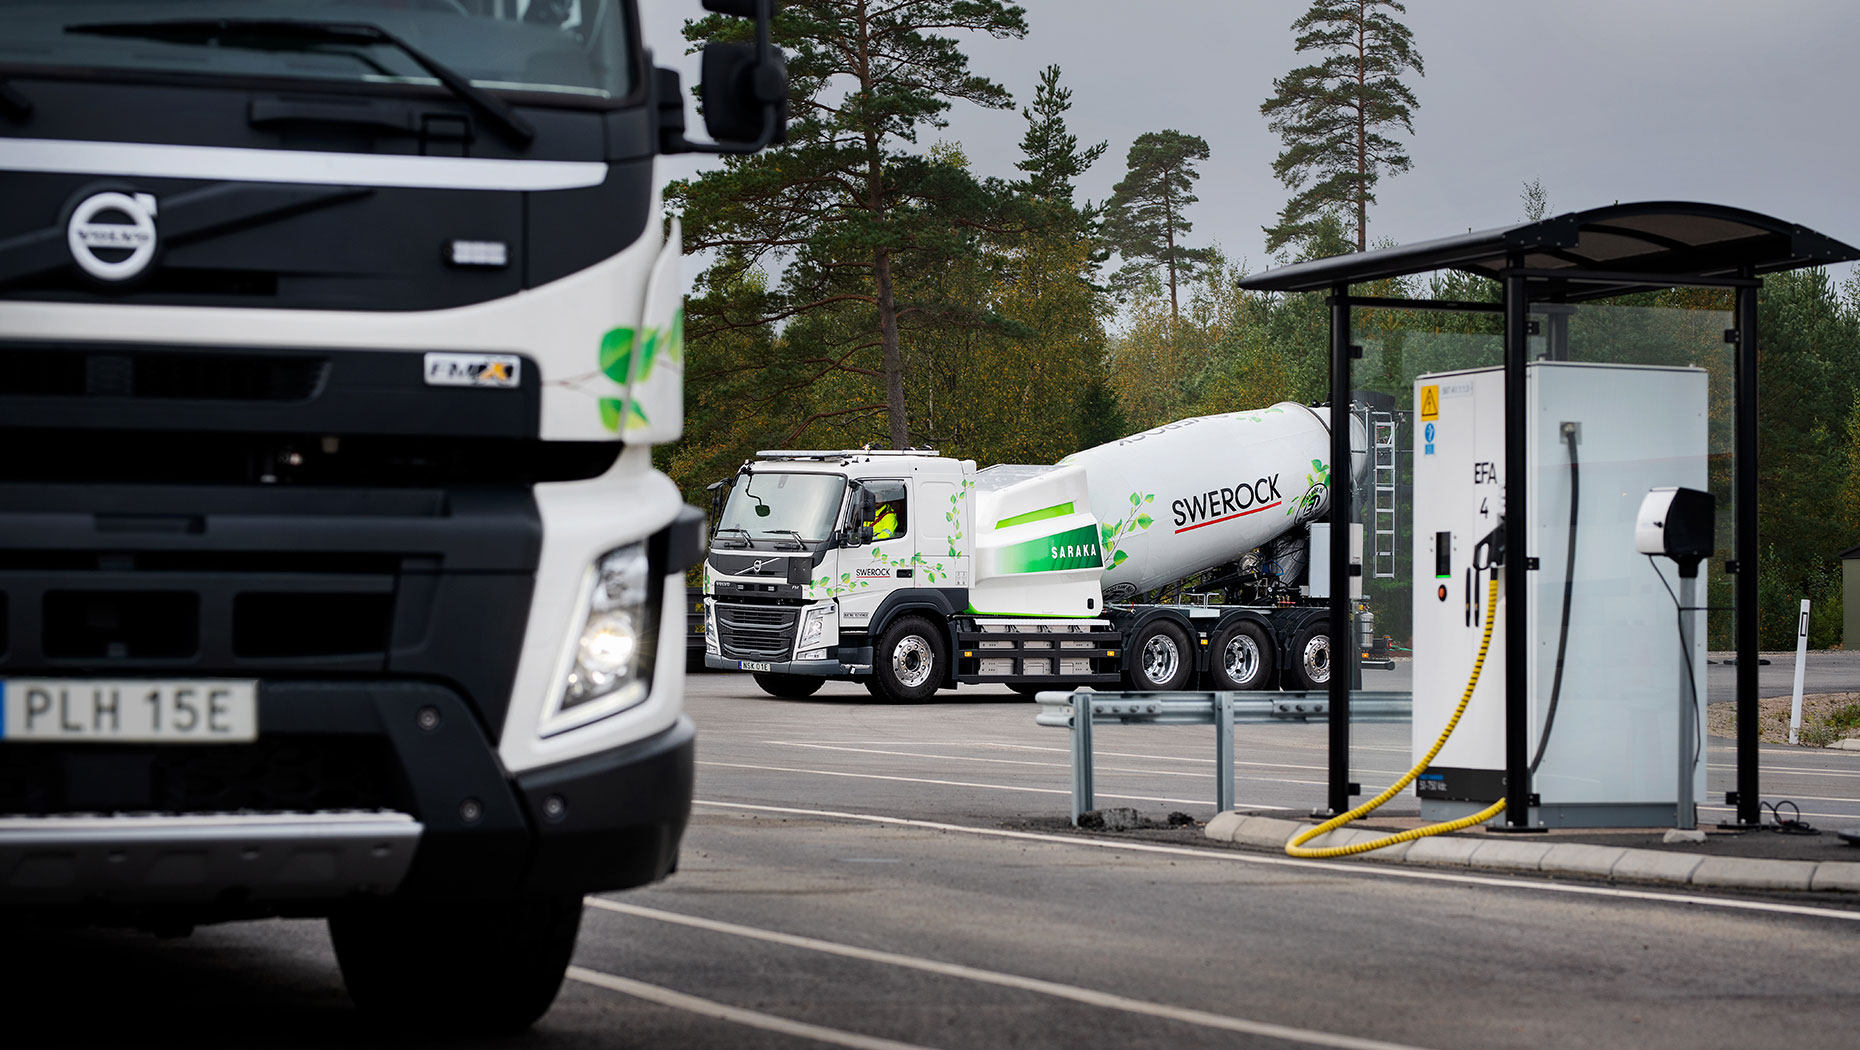 The Volvo FMX and FM parked near a charging station